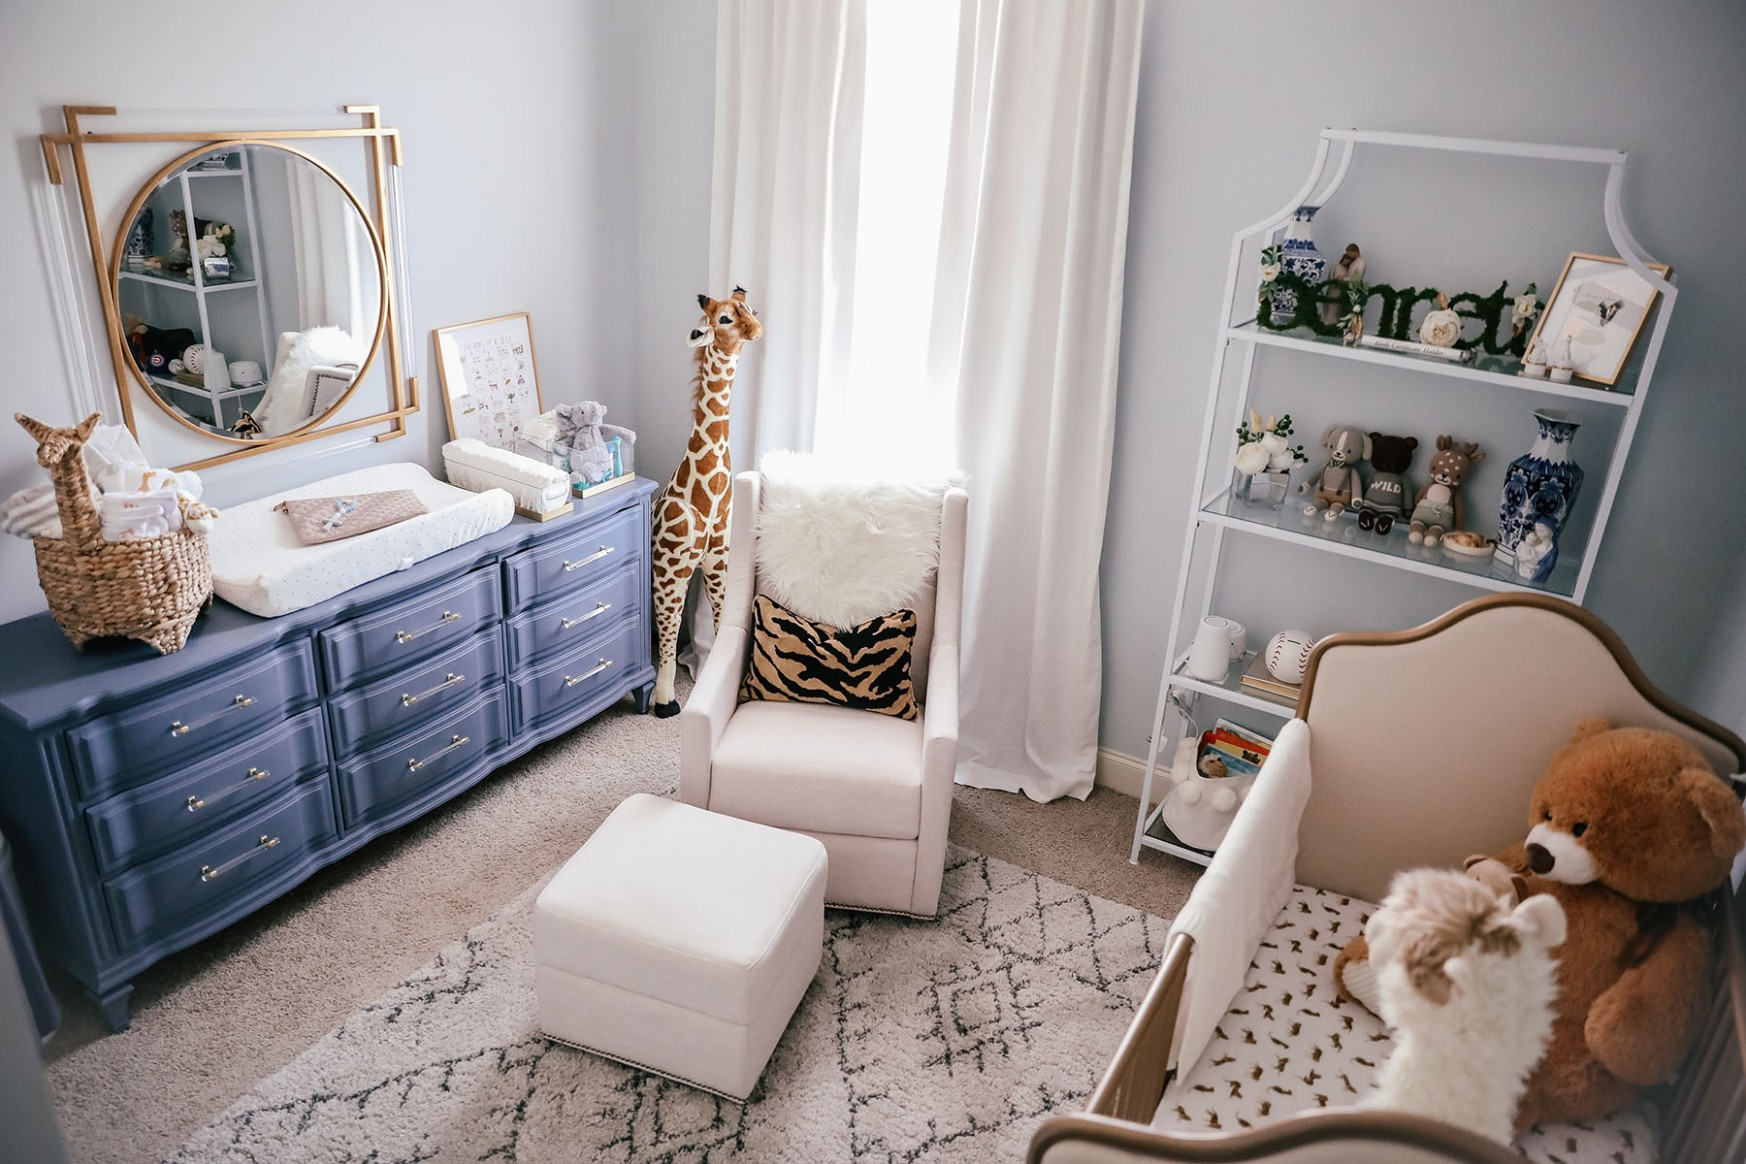 Baby Room Essentials and Nursery Furniture Review - Baby Room Essentials